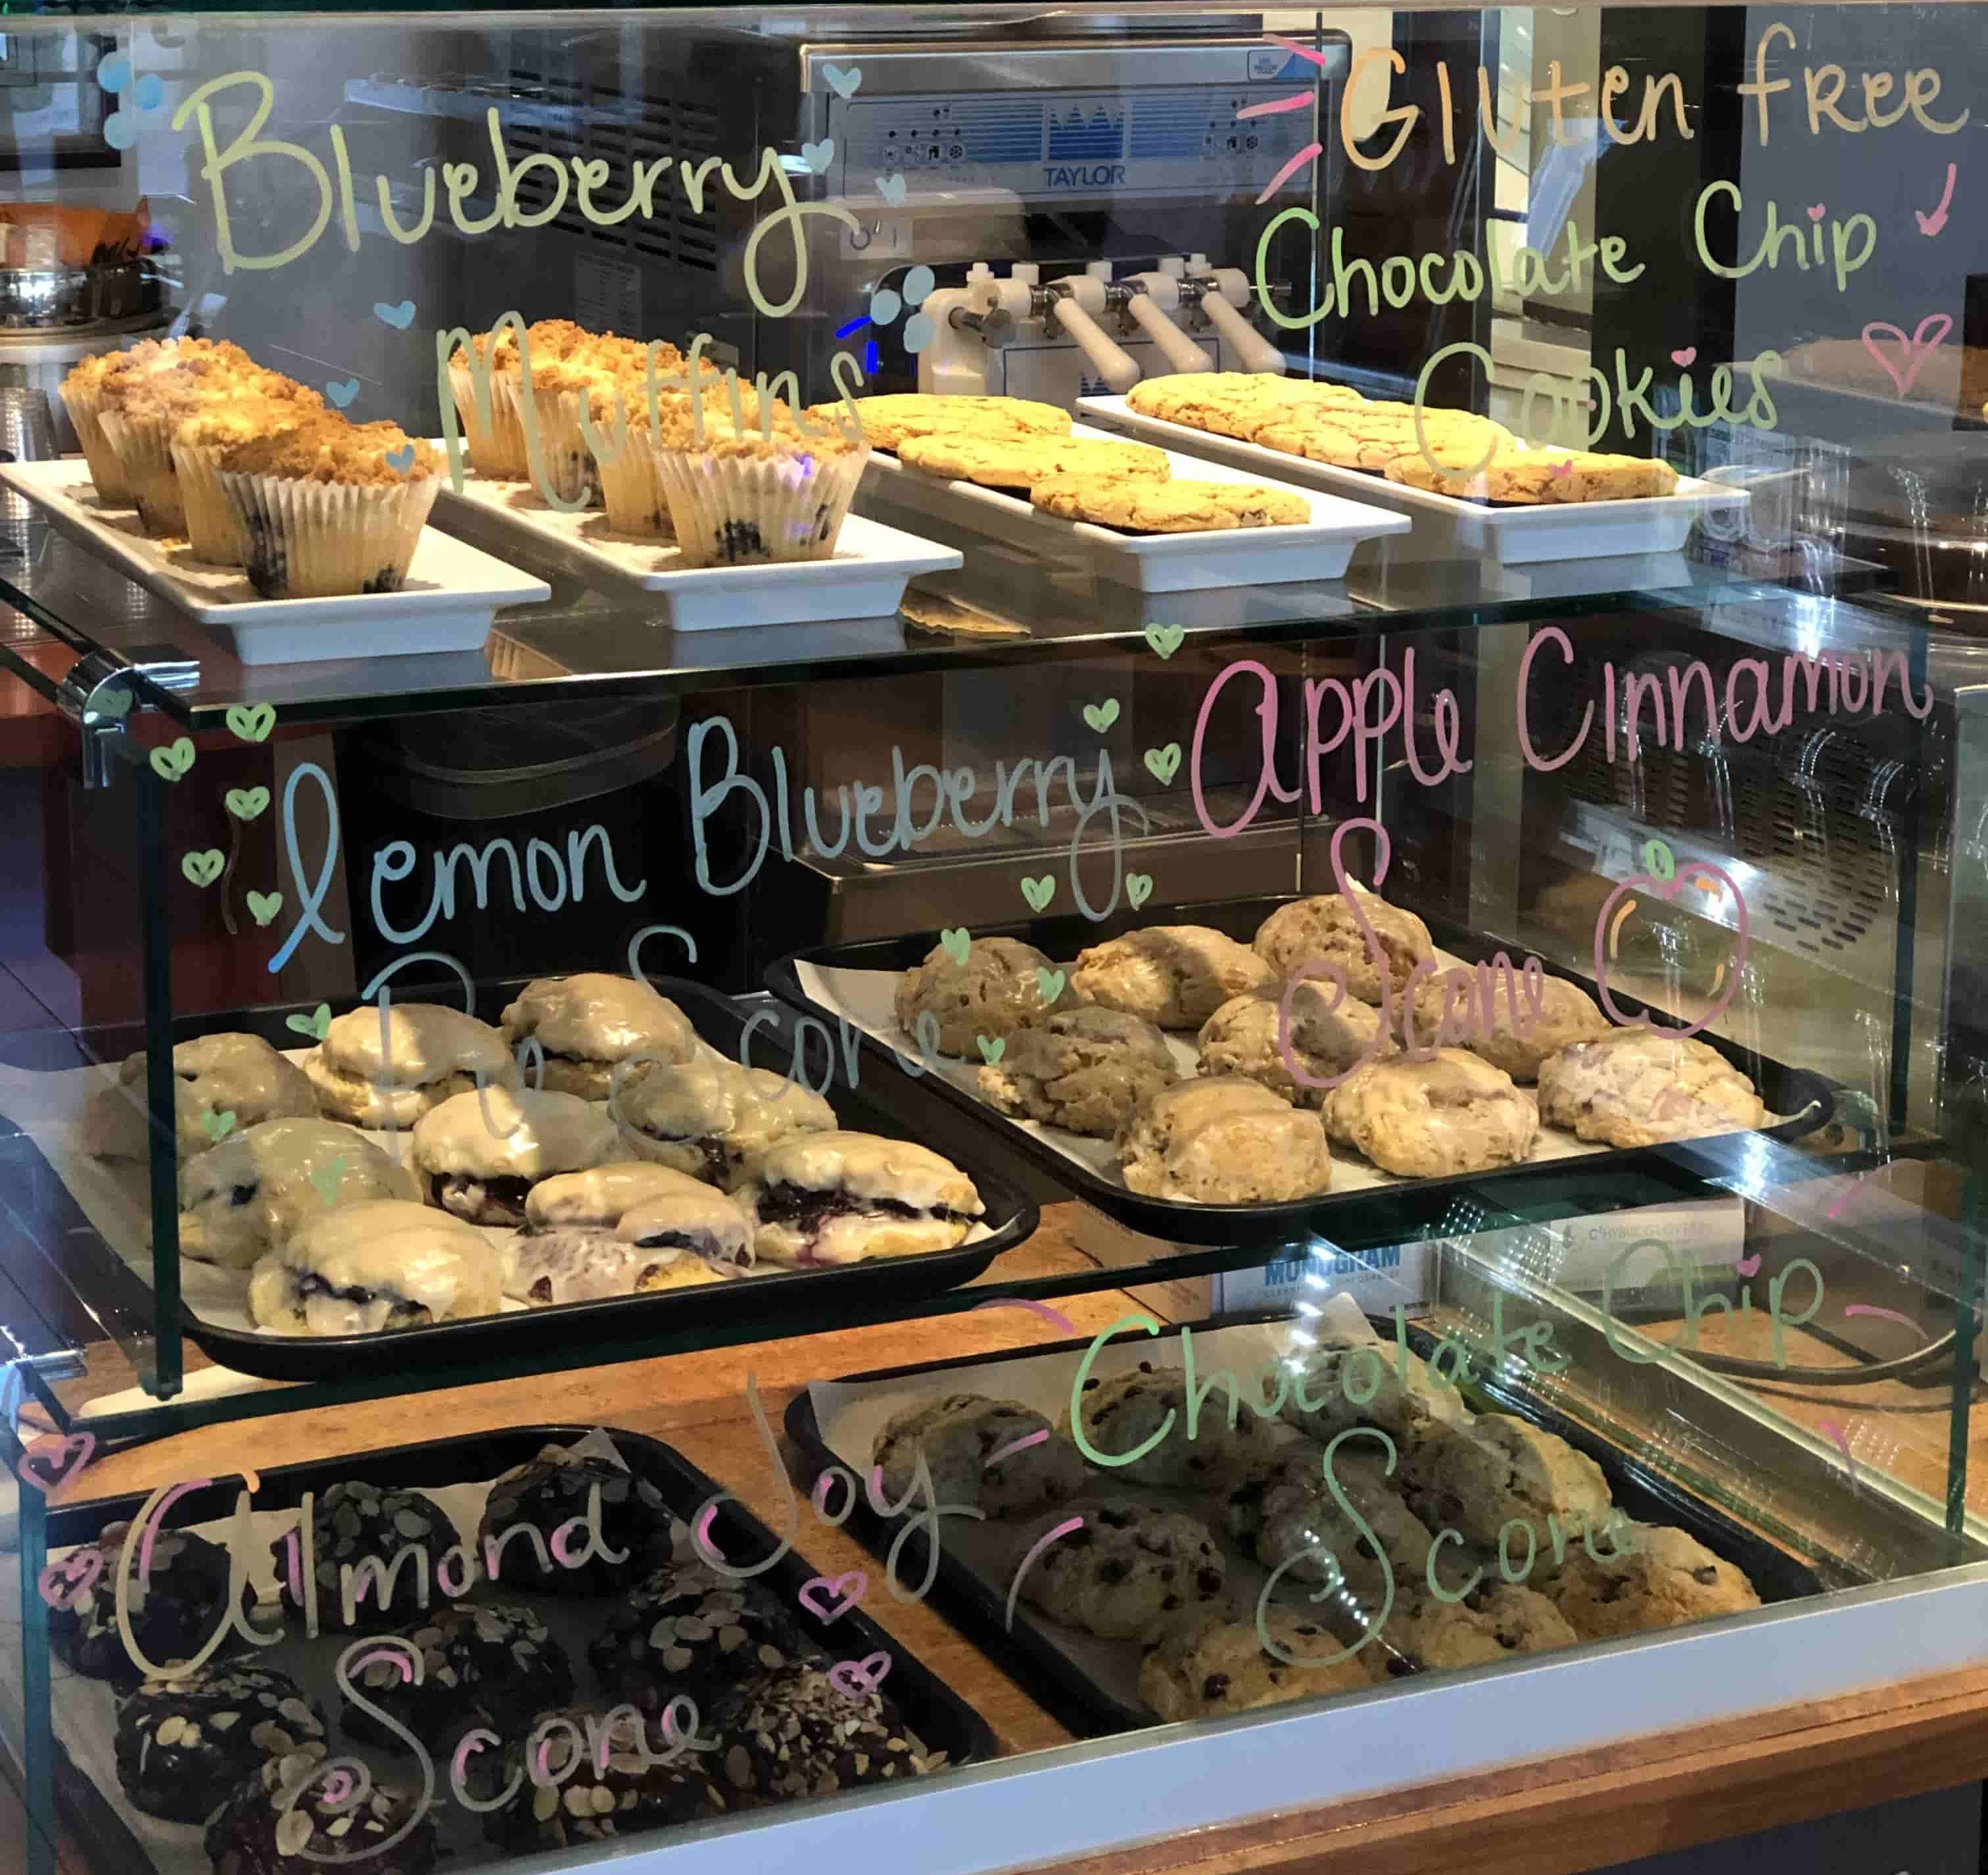 The Kind Bean - Vegan pastries| Local Coffee Shop in Chandler, Arizona